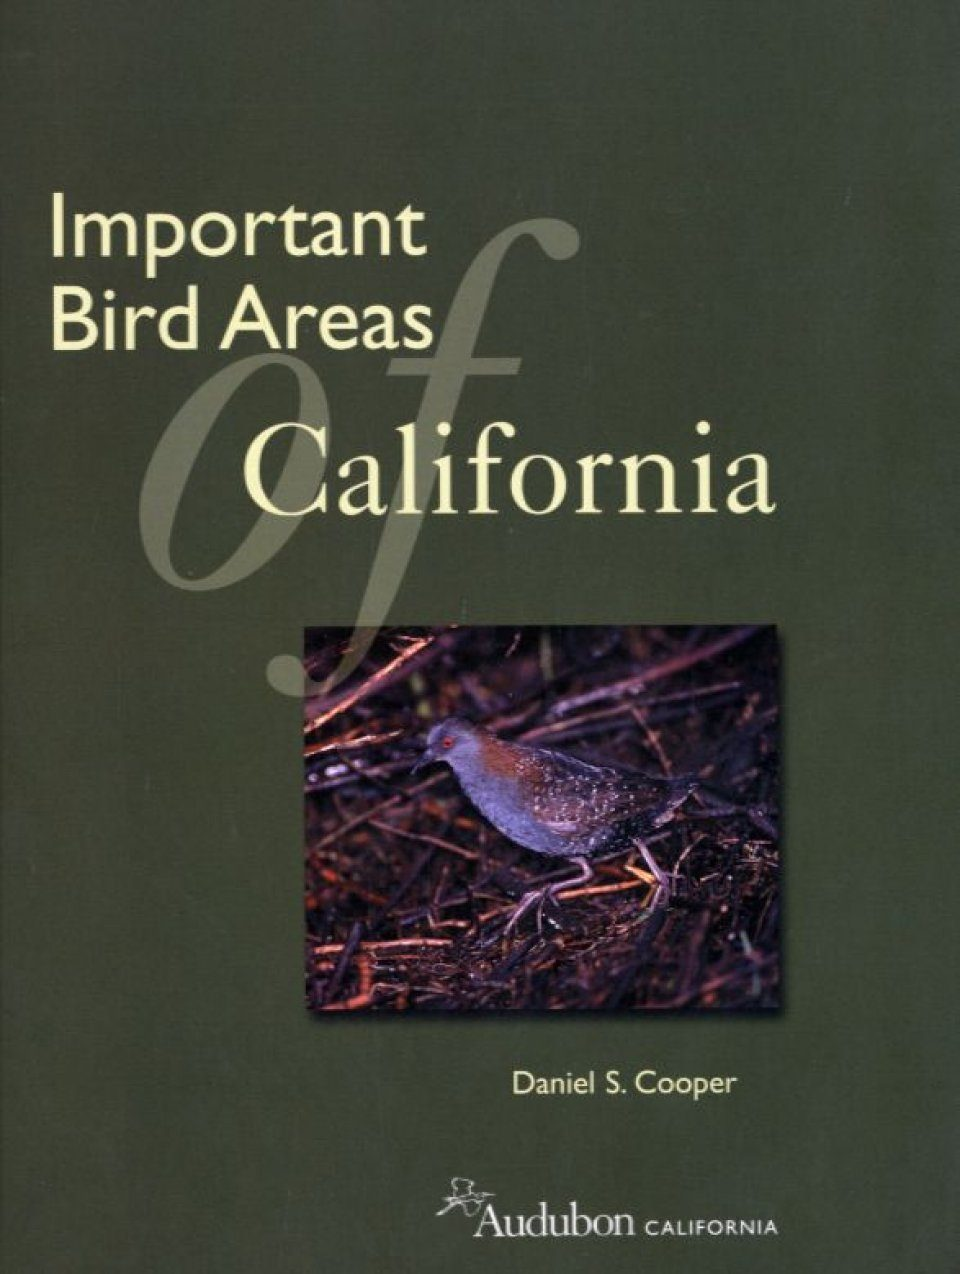 Important Bird Areas of California